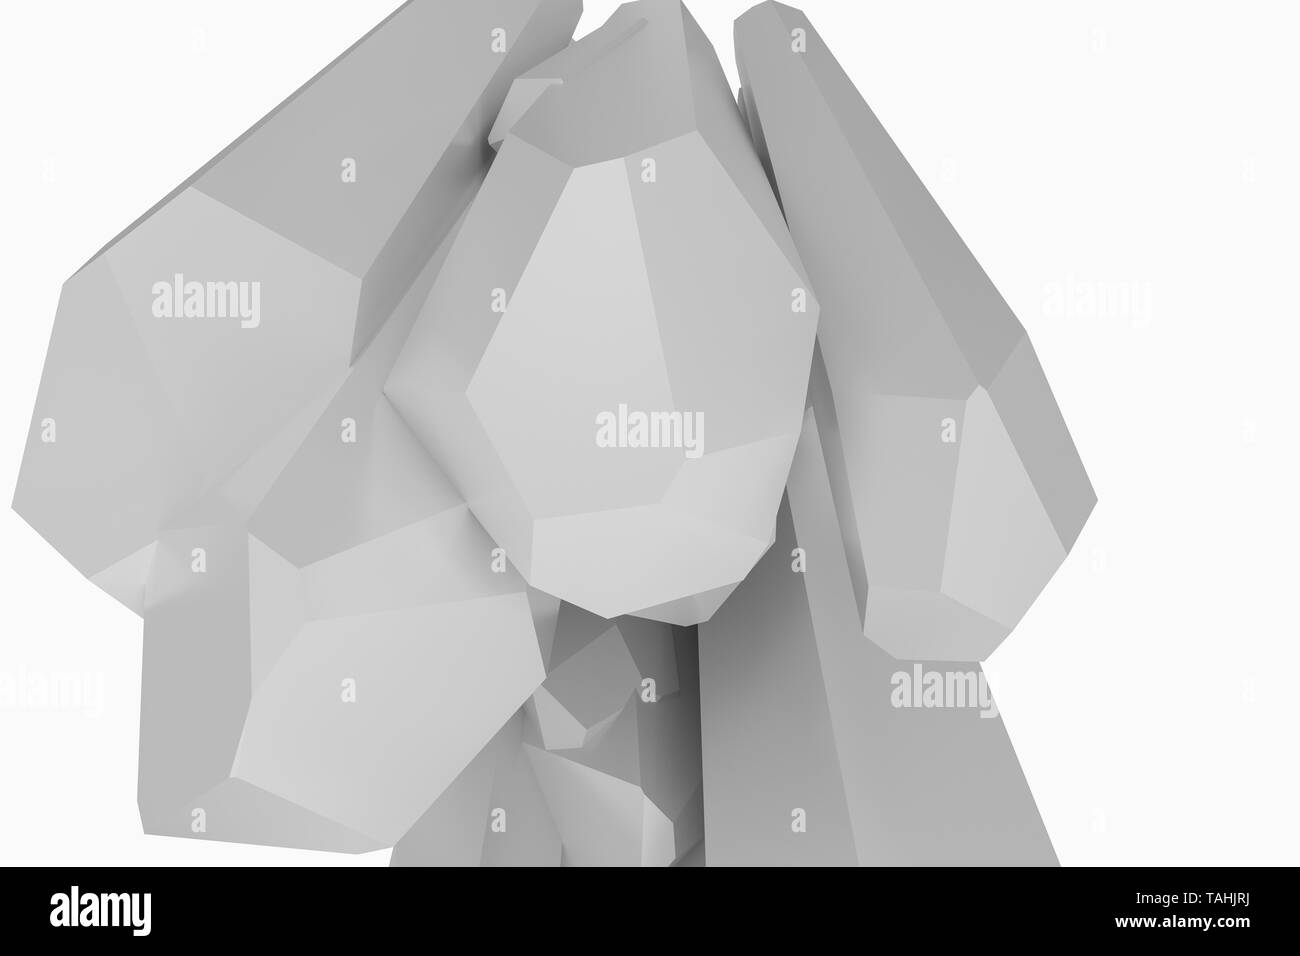 A cluster of precision-cut magic crystal, science fiction and magic theme, 3d rendering. Computer digital background. - Stock Image